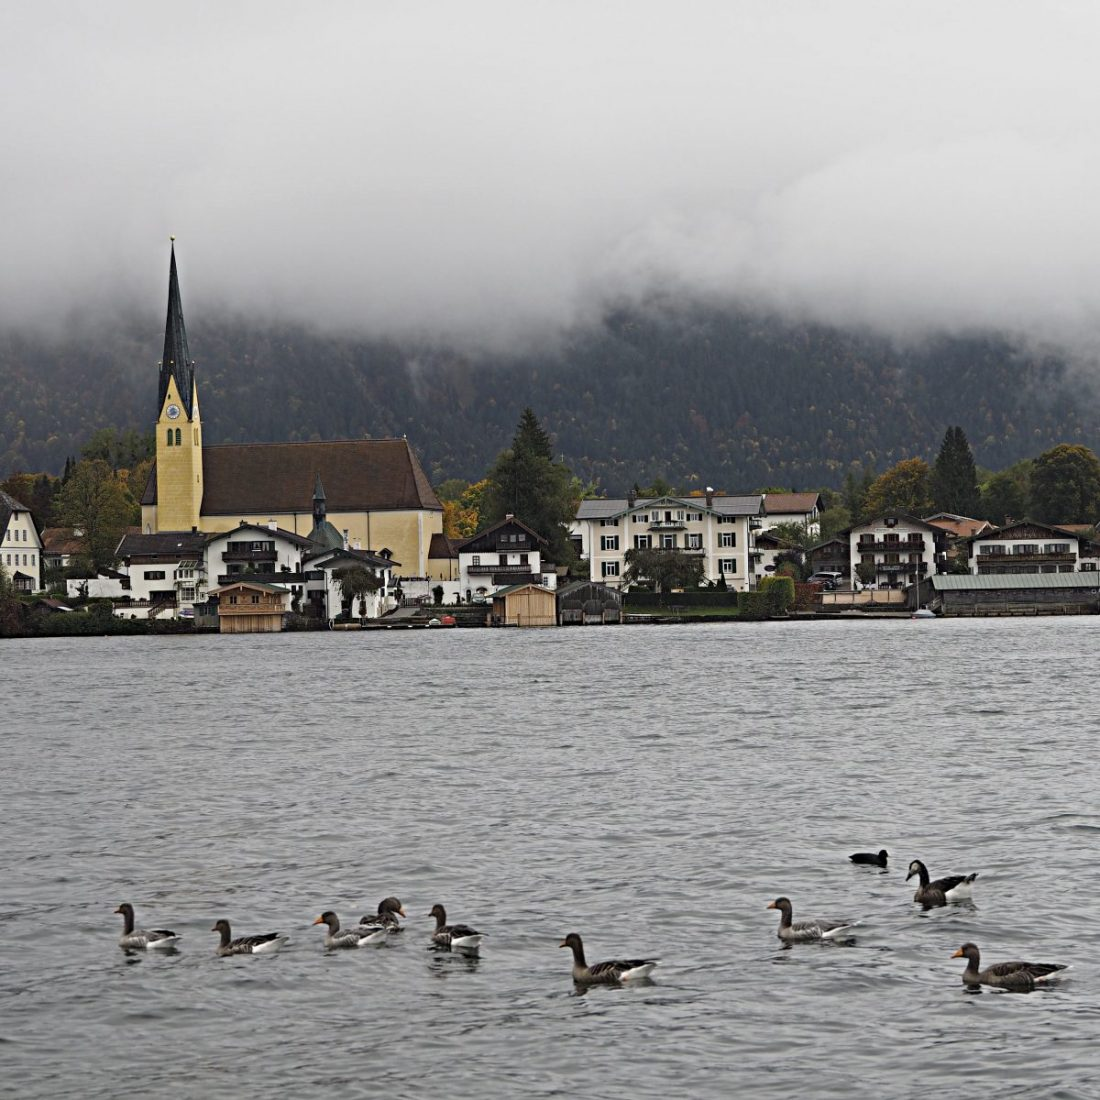 A day trip to Tegernsee lake – Photodiary